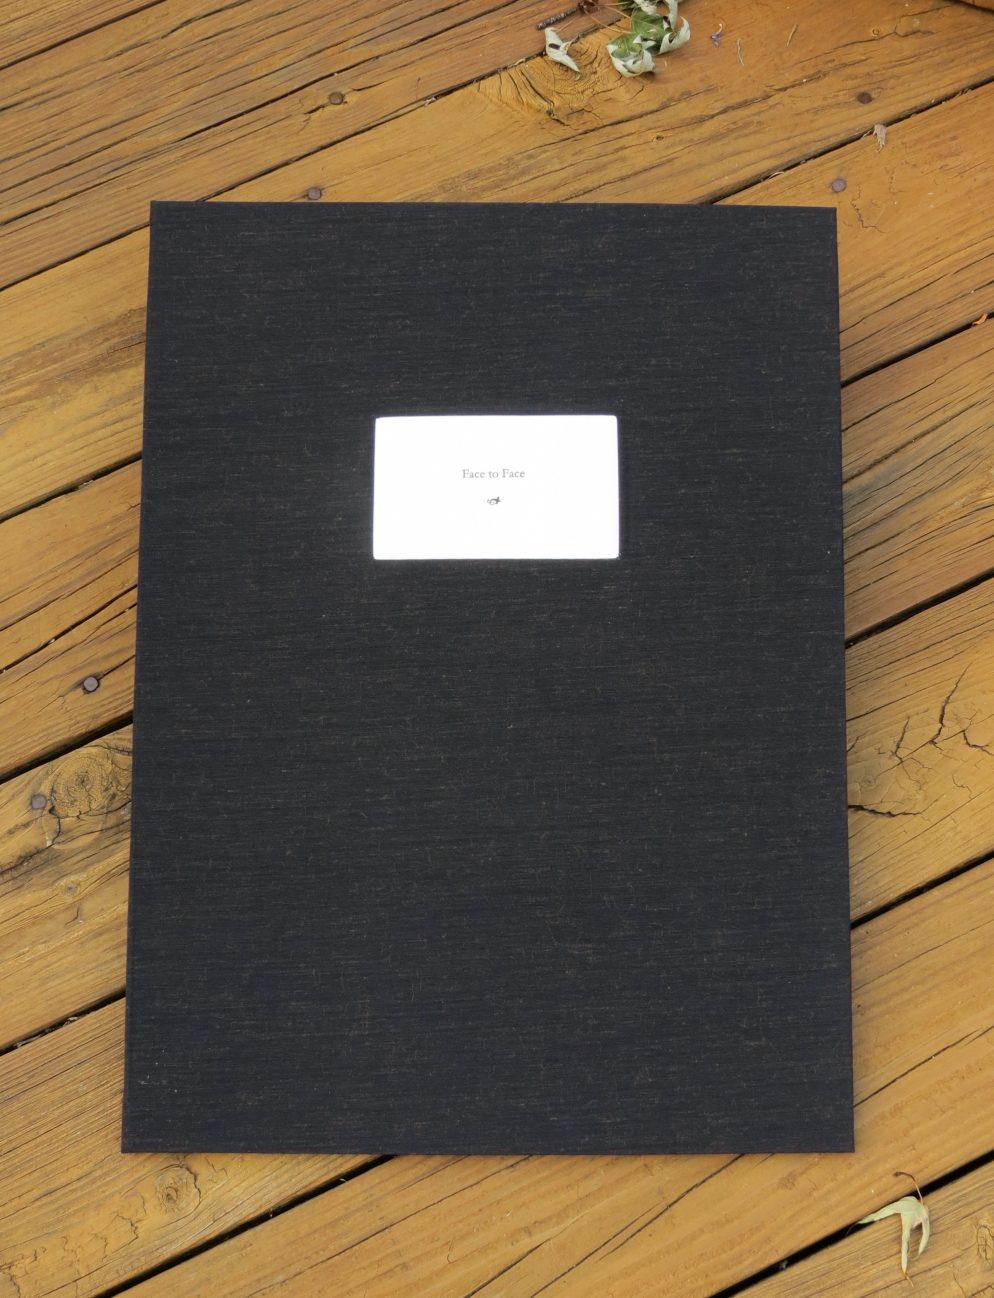 Face to Face artist book cover